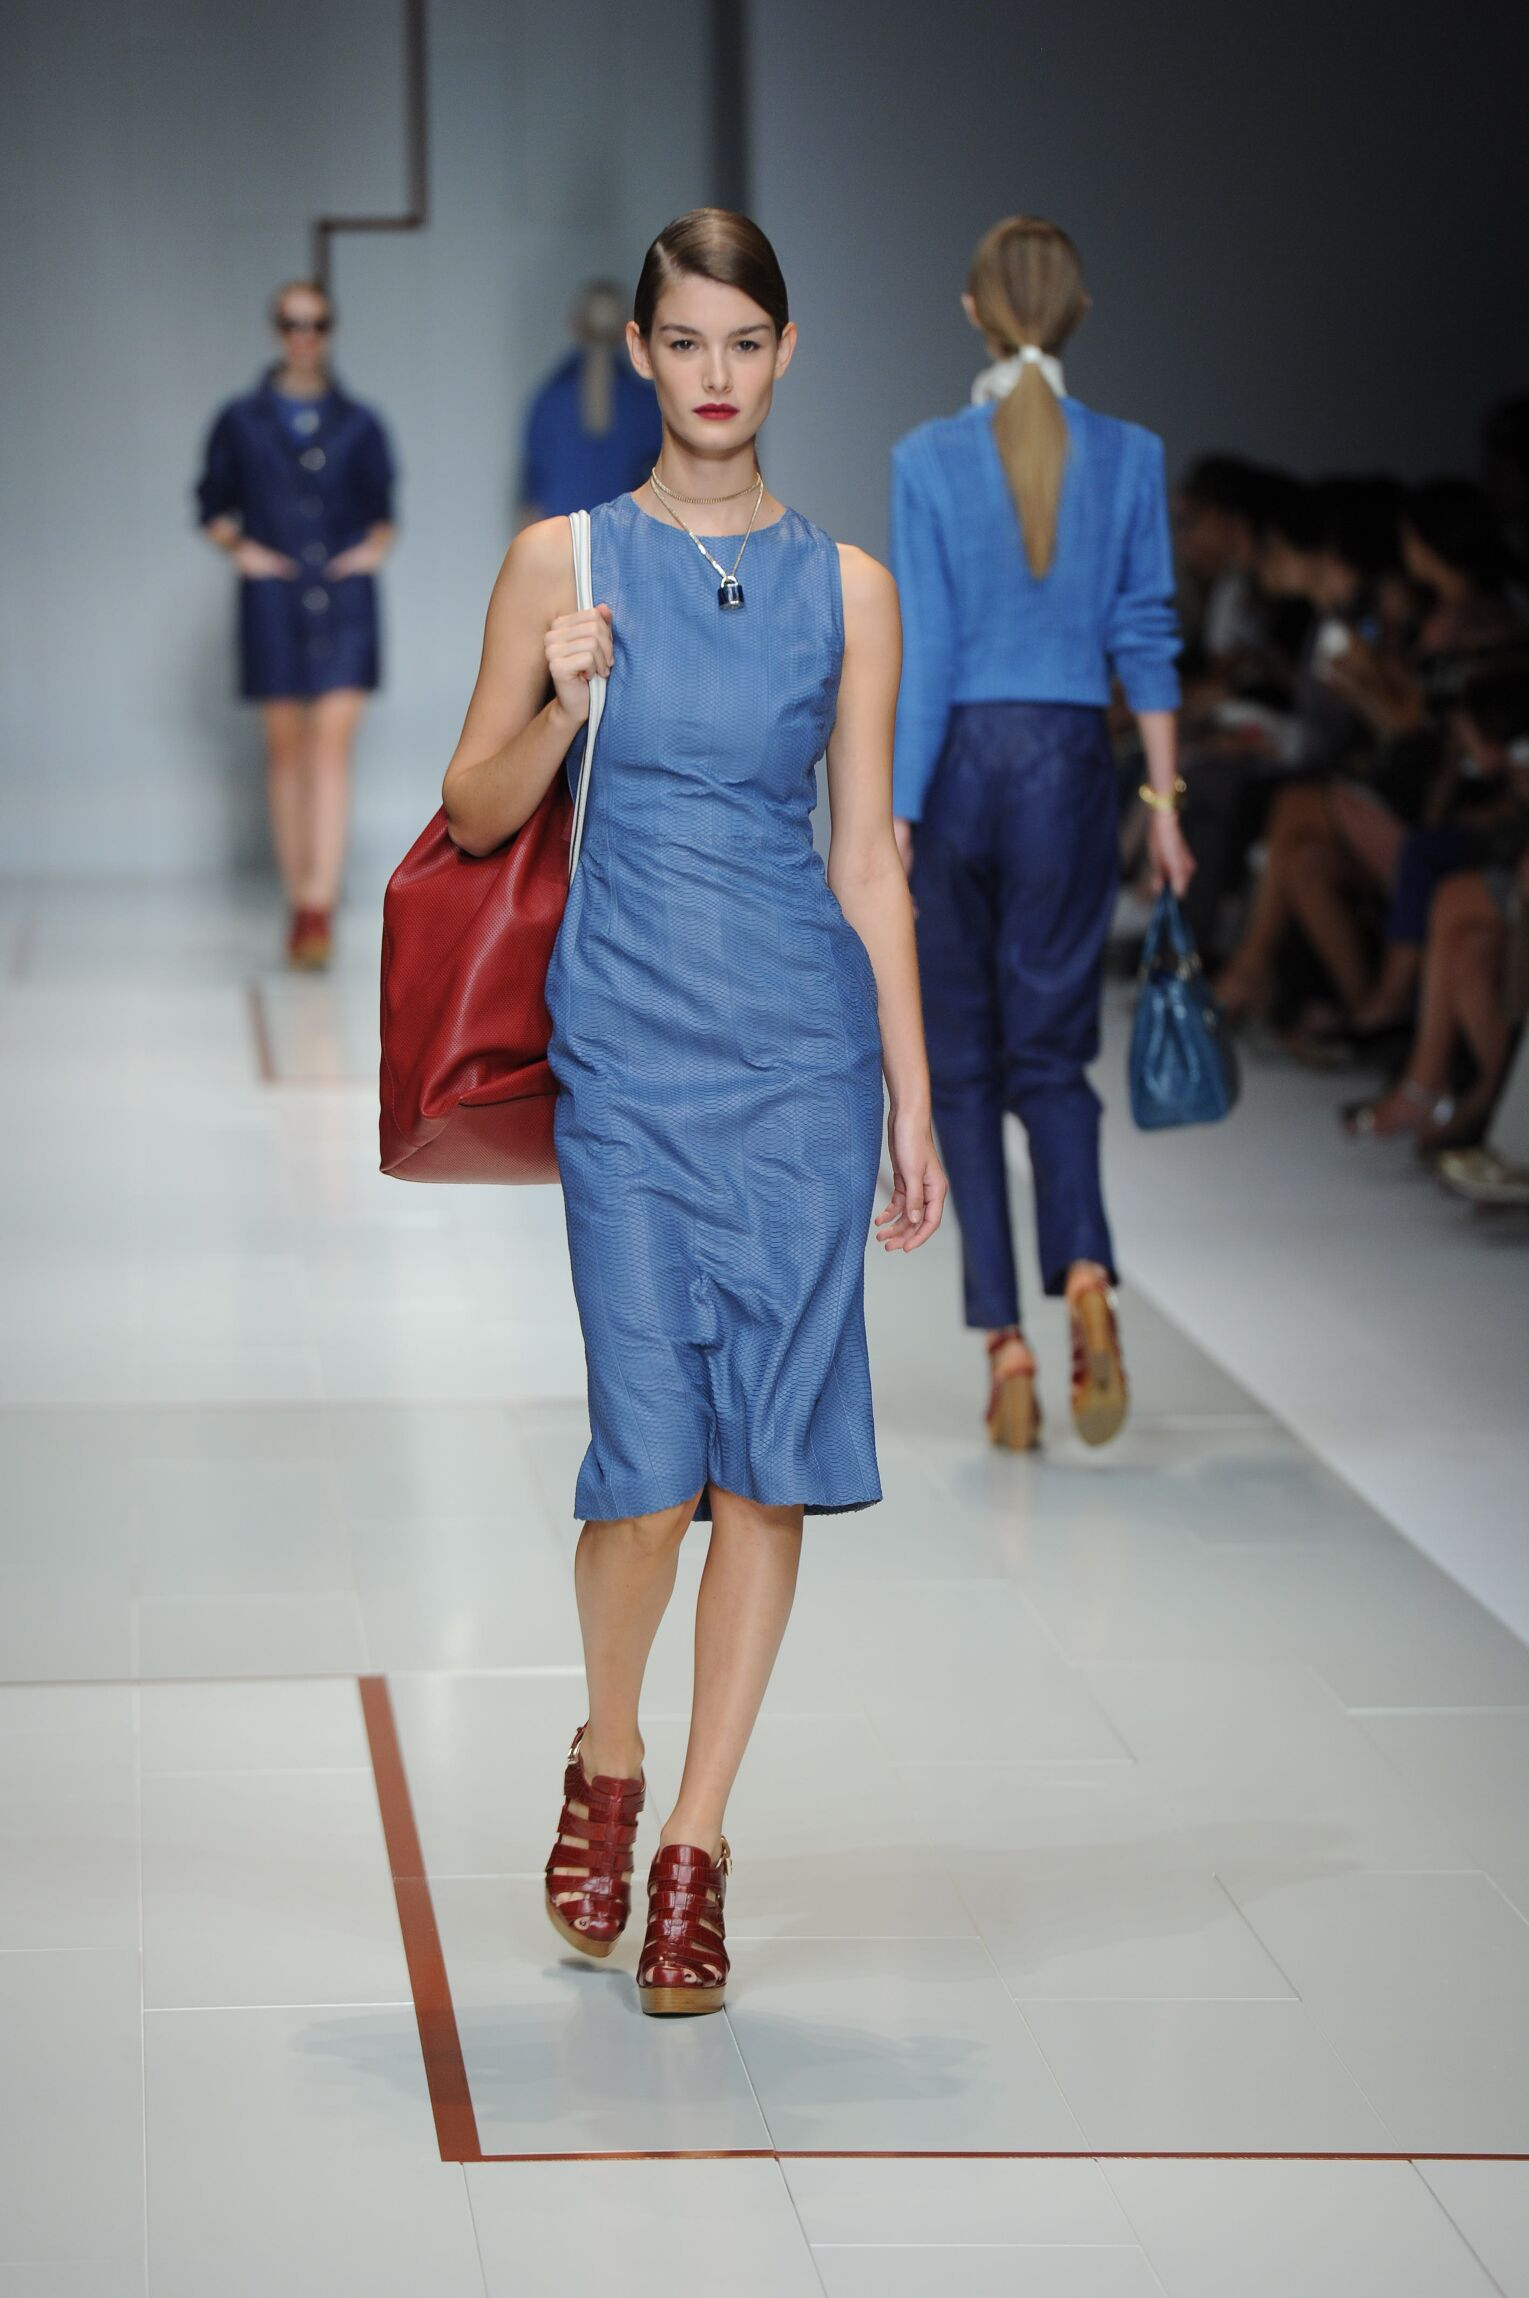 Catwalk Trussardi Woman Fashion Show Summer 2015